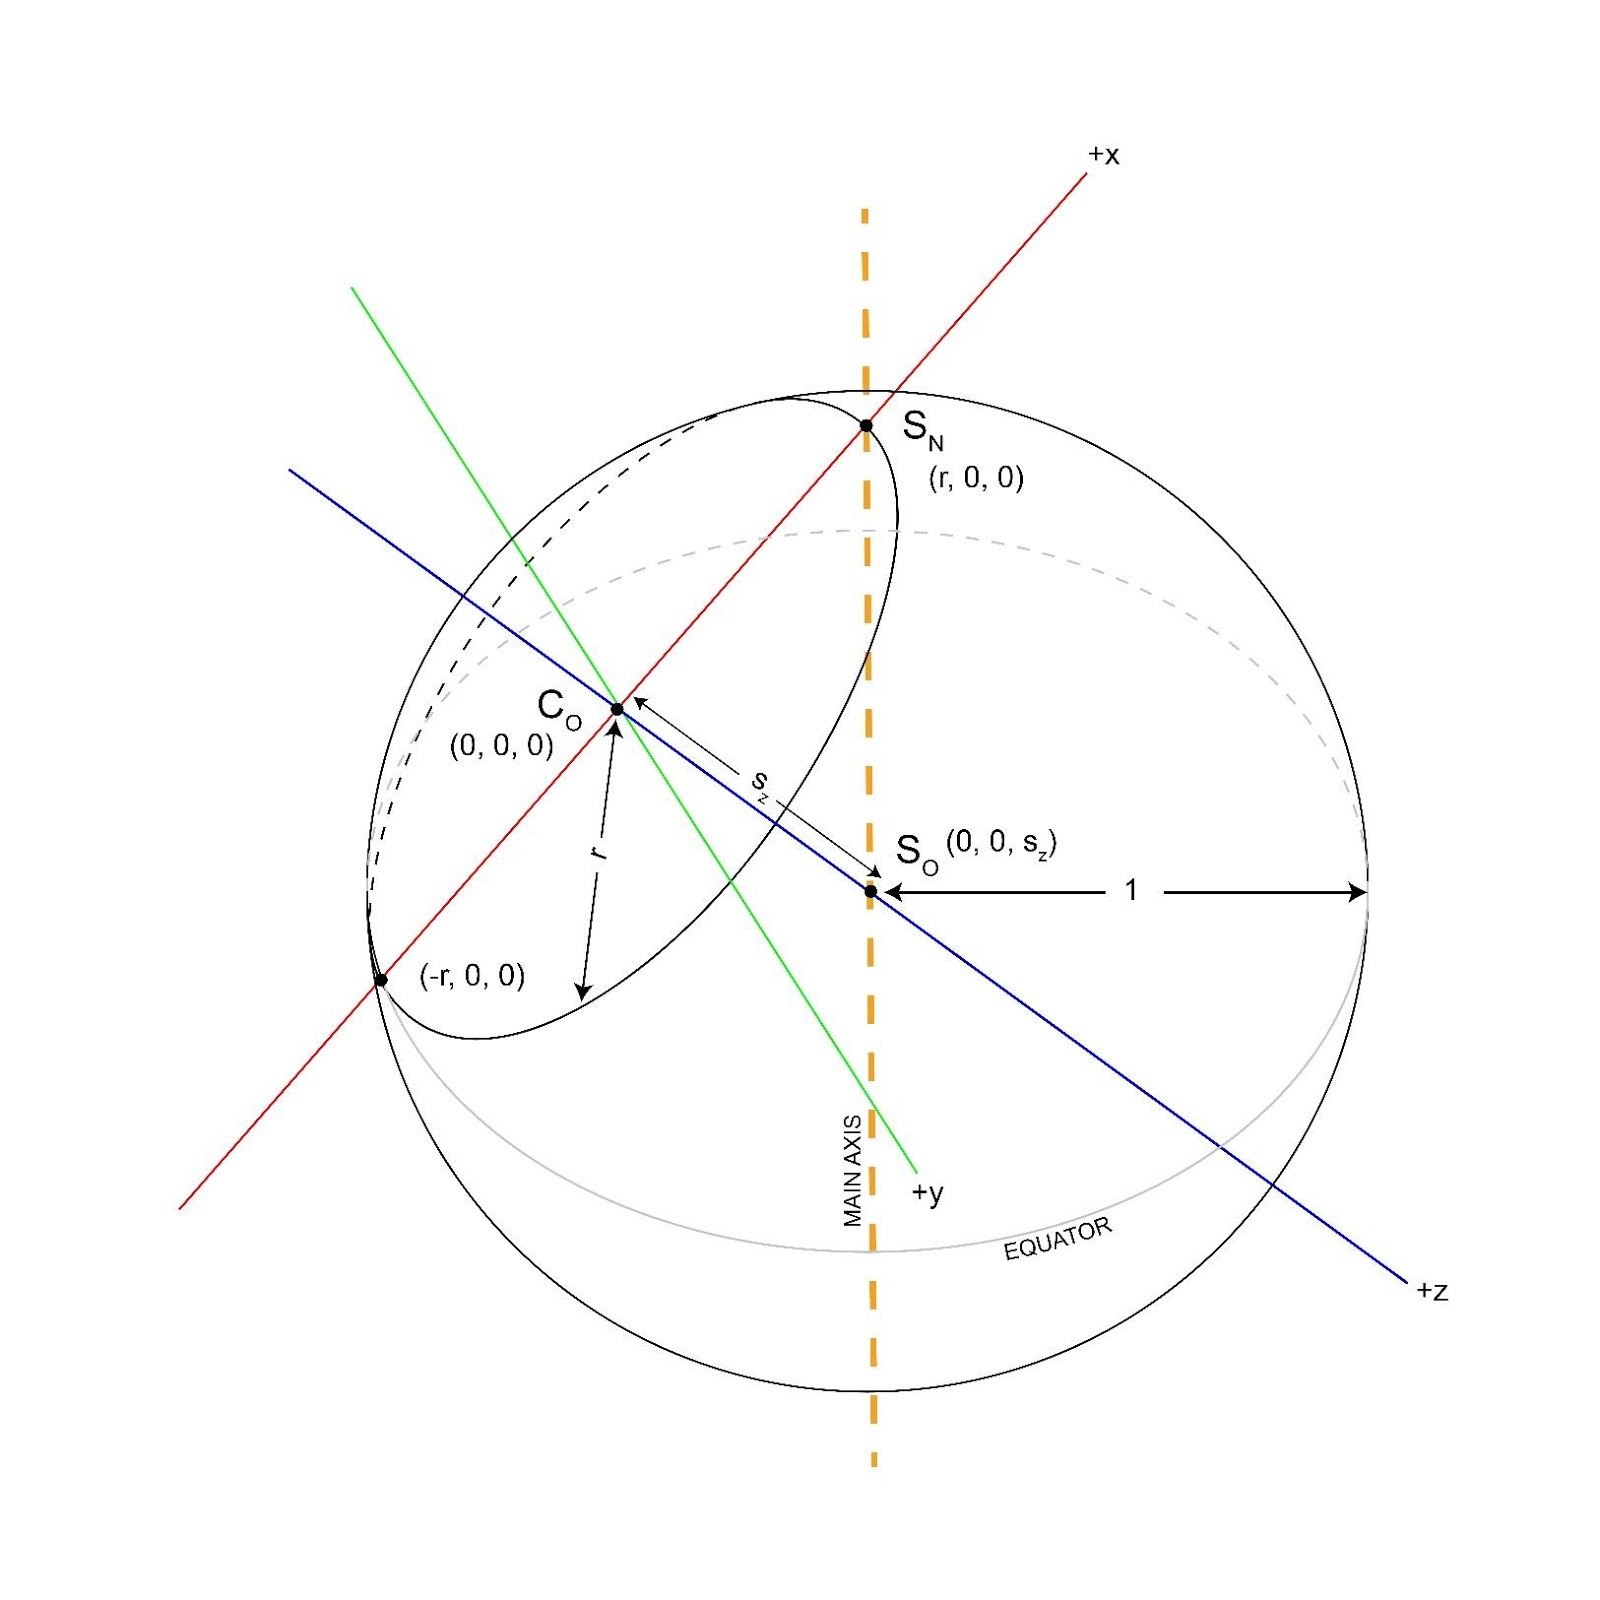 The Coordinate System